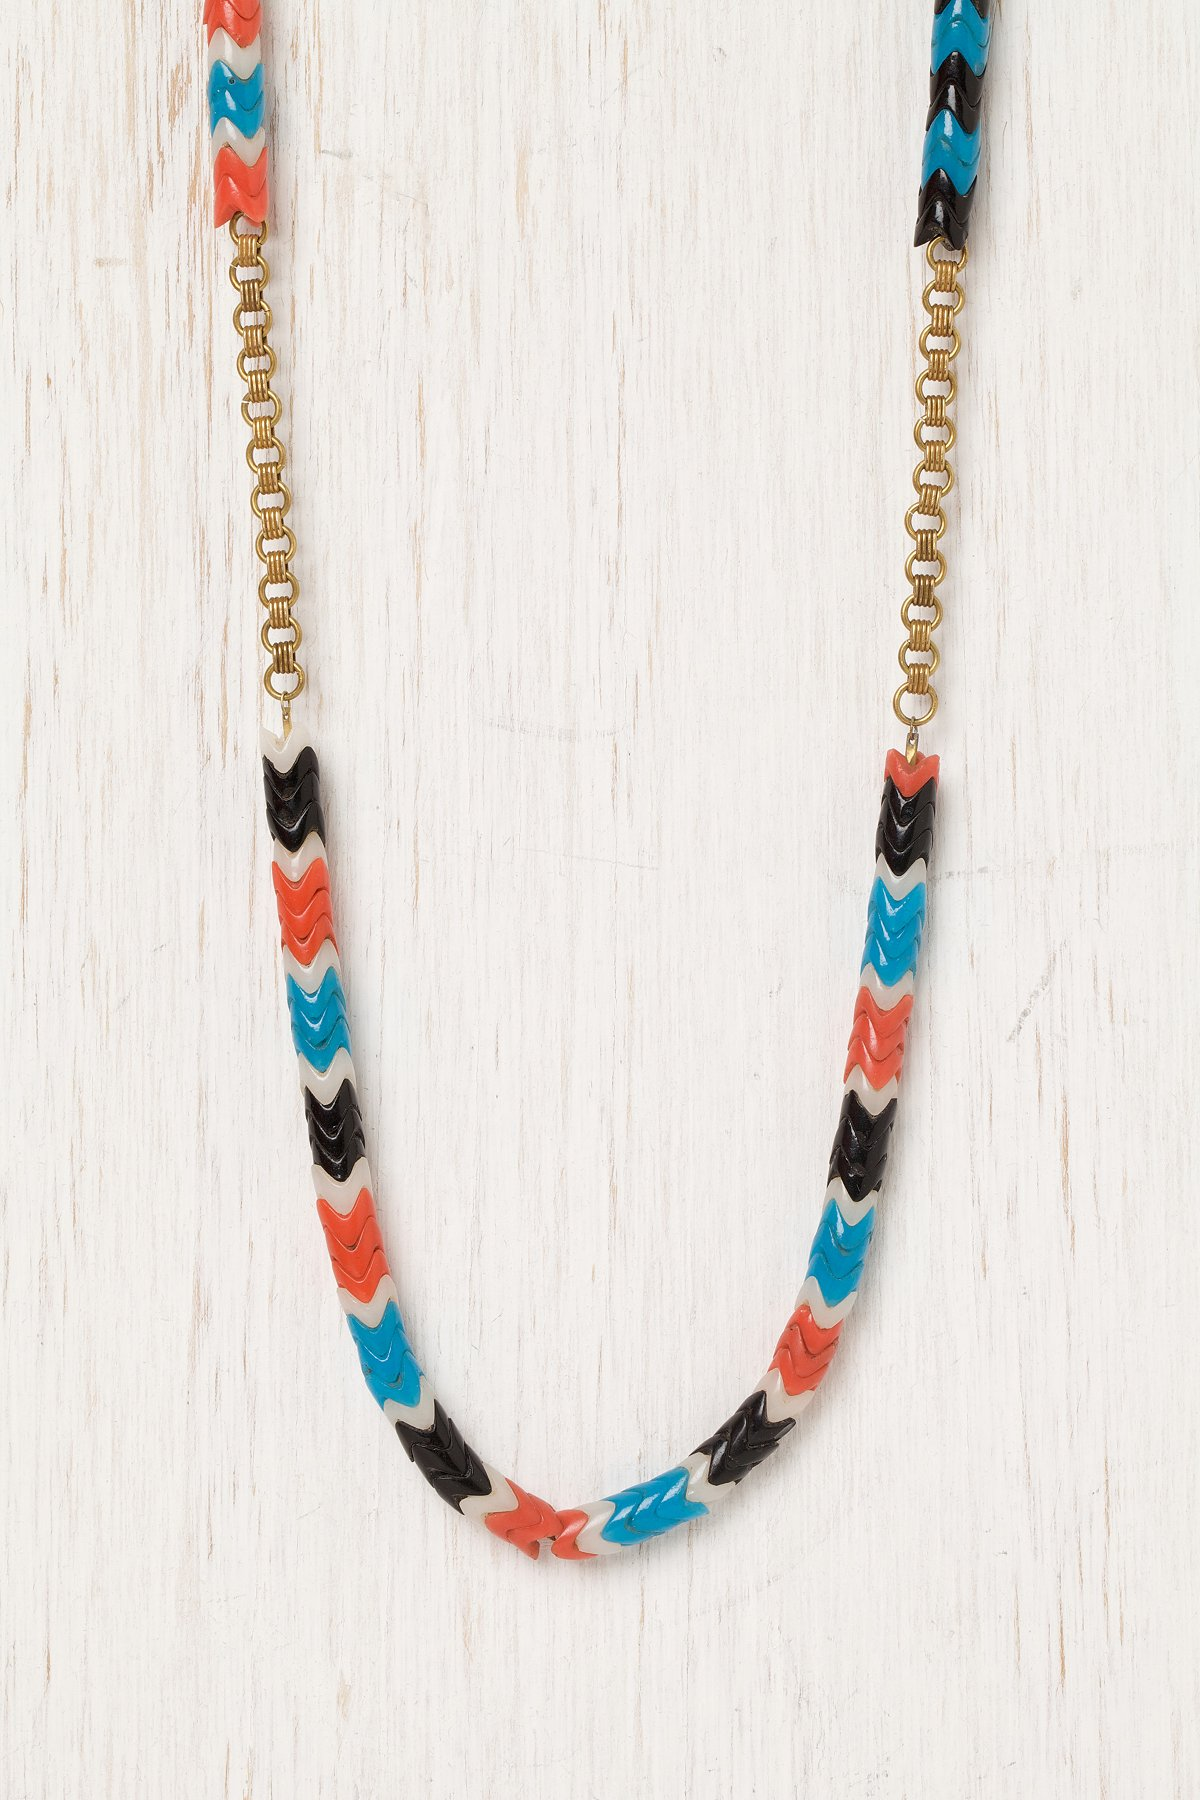 The Wanderer Necklace